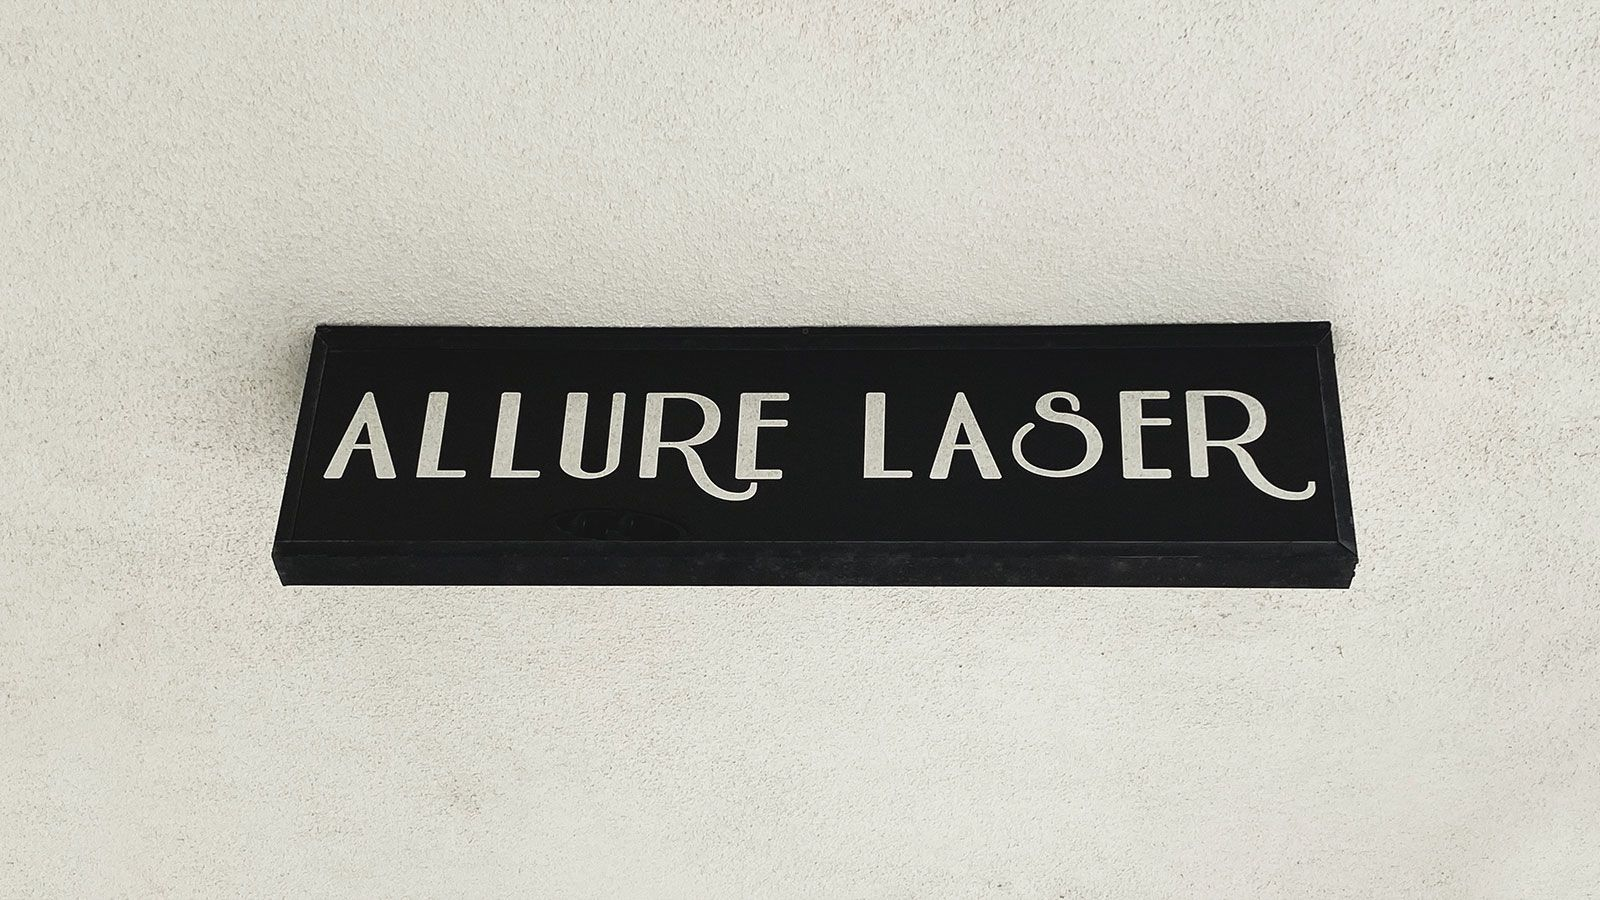 Allure Laser light box sign